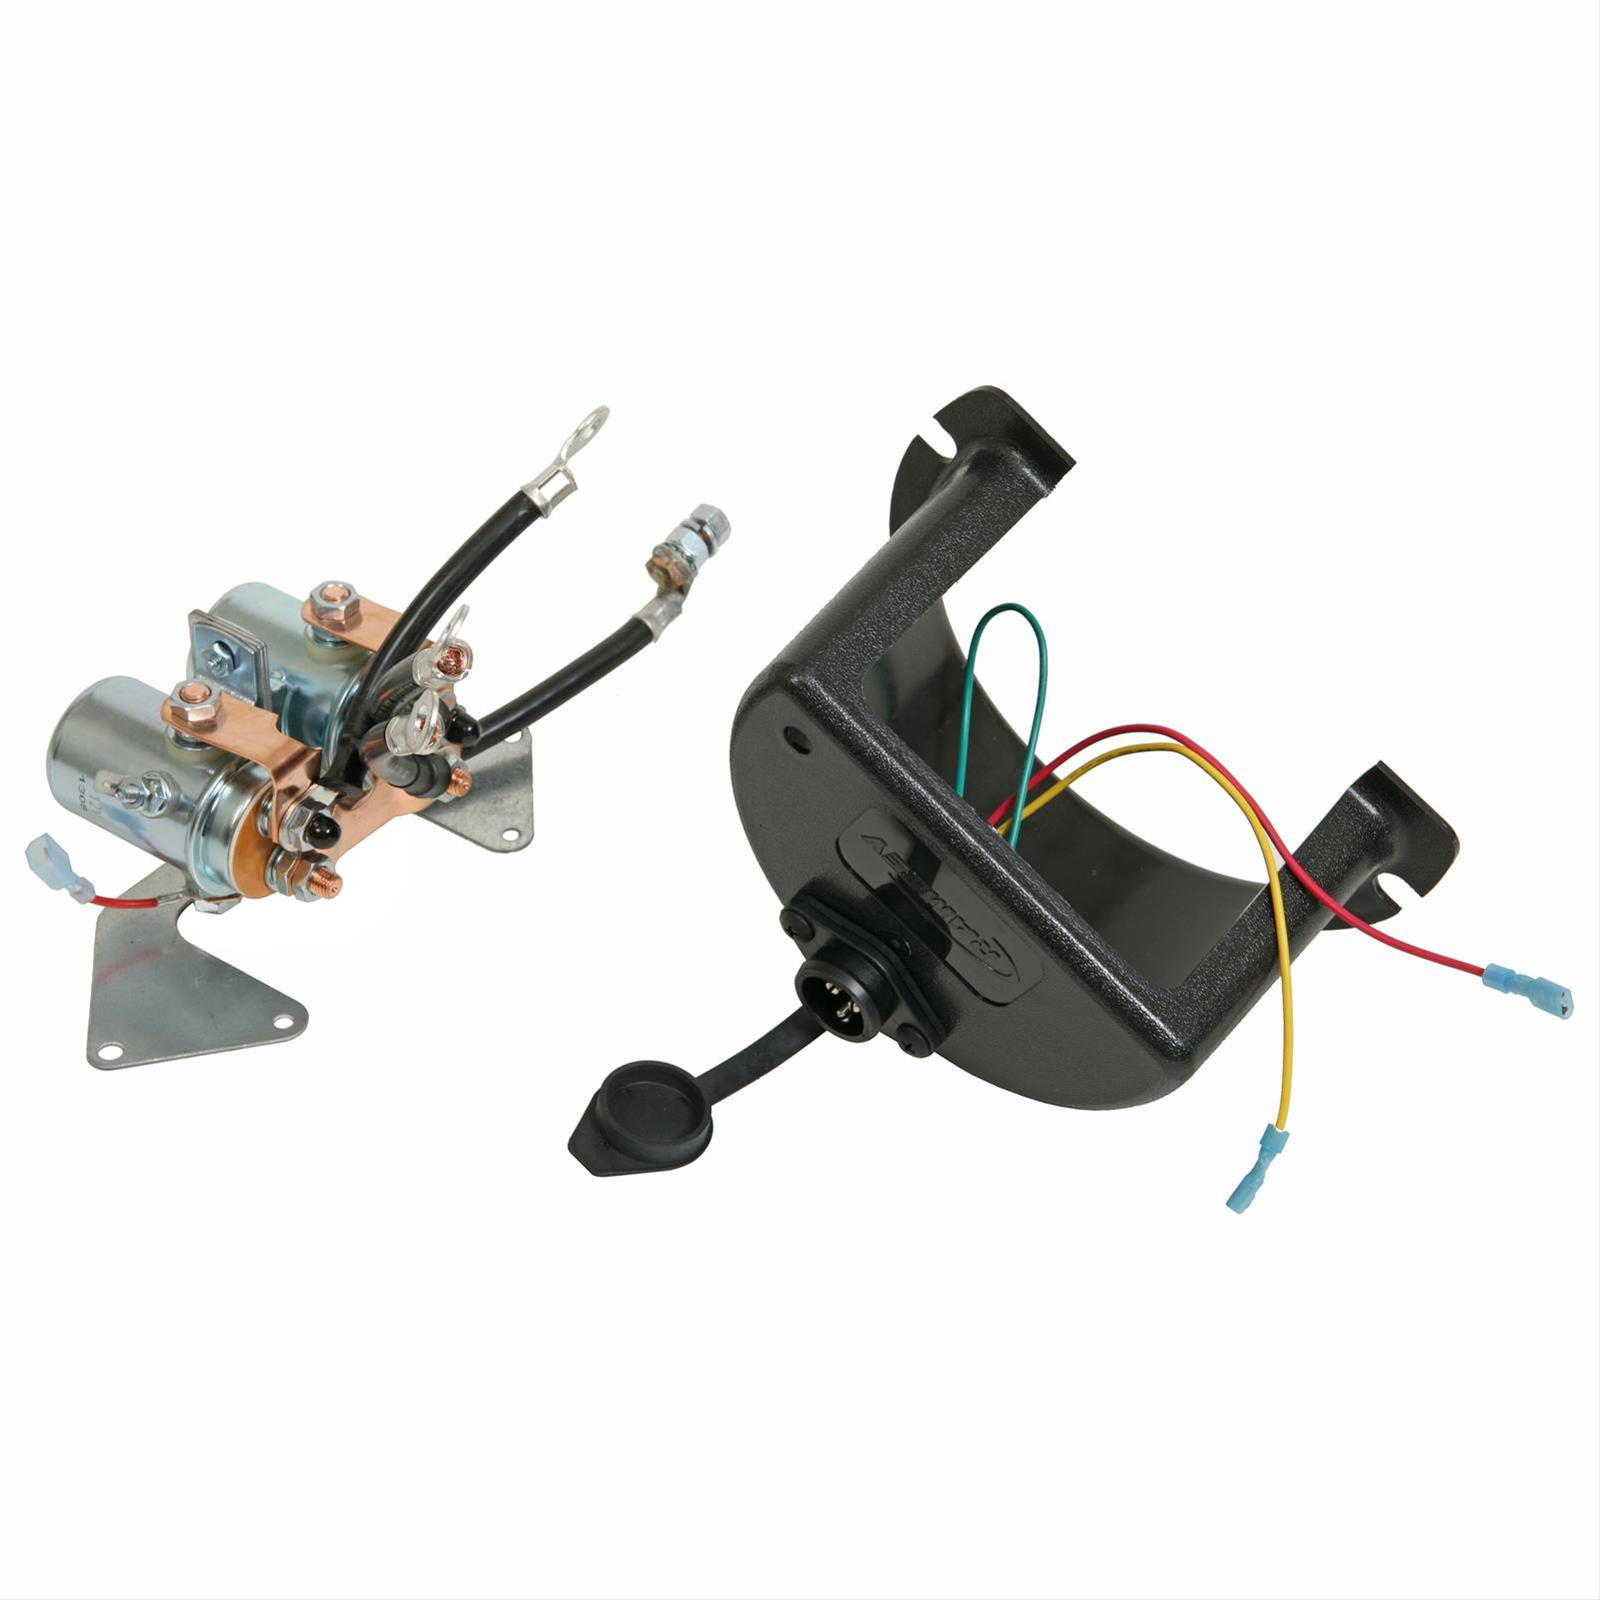 ramsey winch solenoid wiring explore wiring diagram on the net • ramsey winch solenoid replacement 12 v re 8000 re 12000 each rh com old ramsey winch wiring diagram old ramsey winch wiring diagram